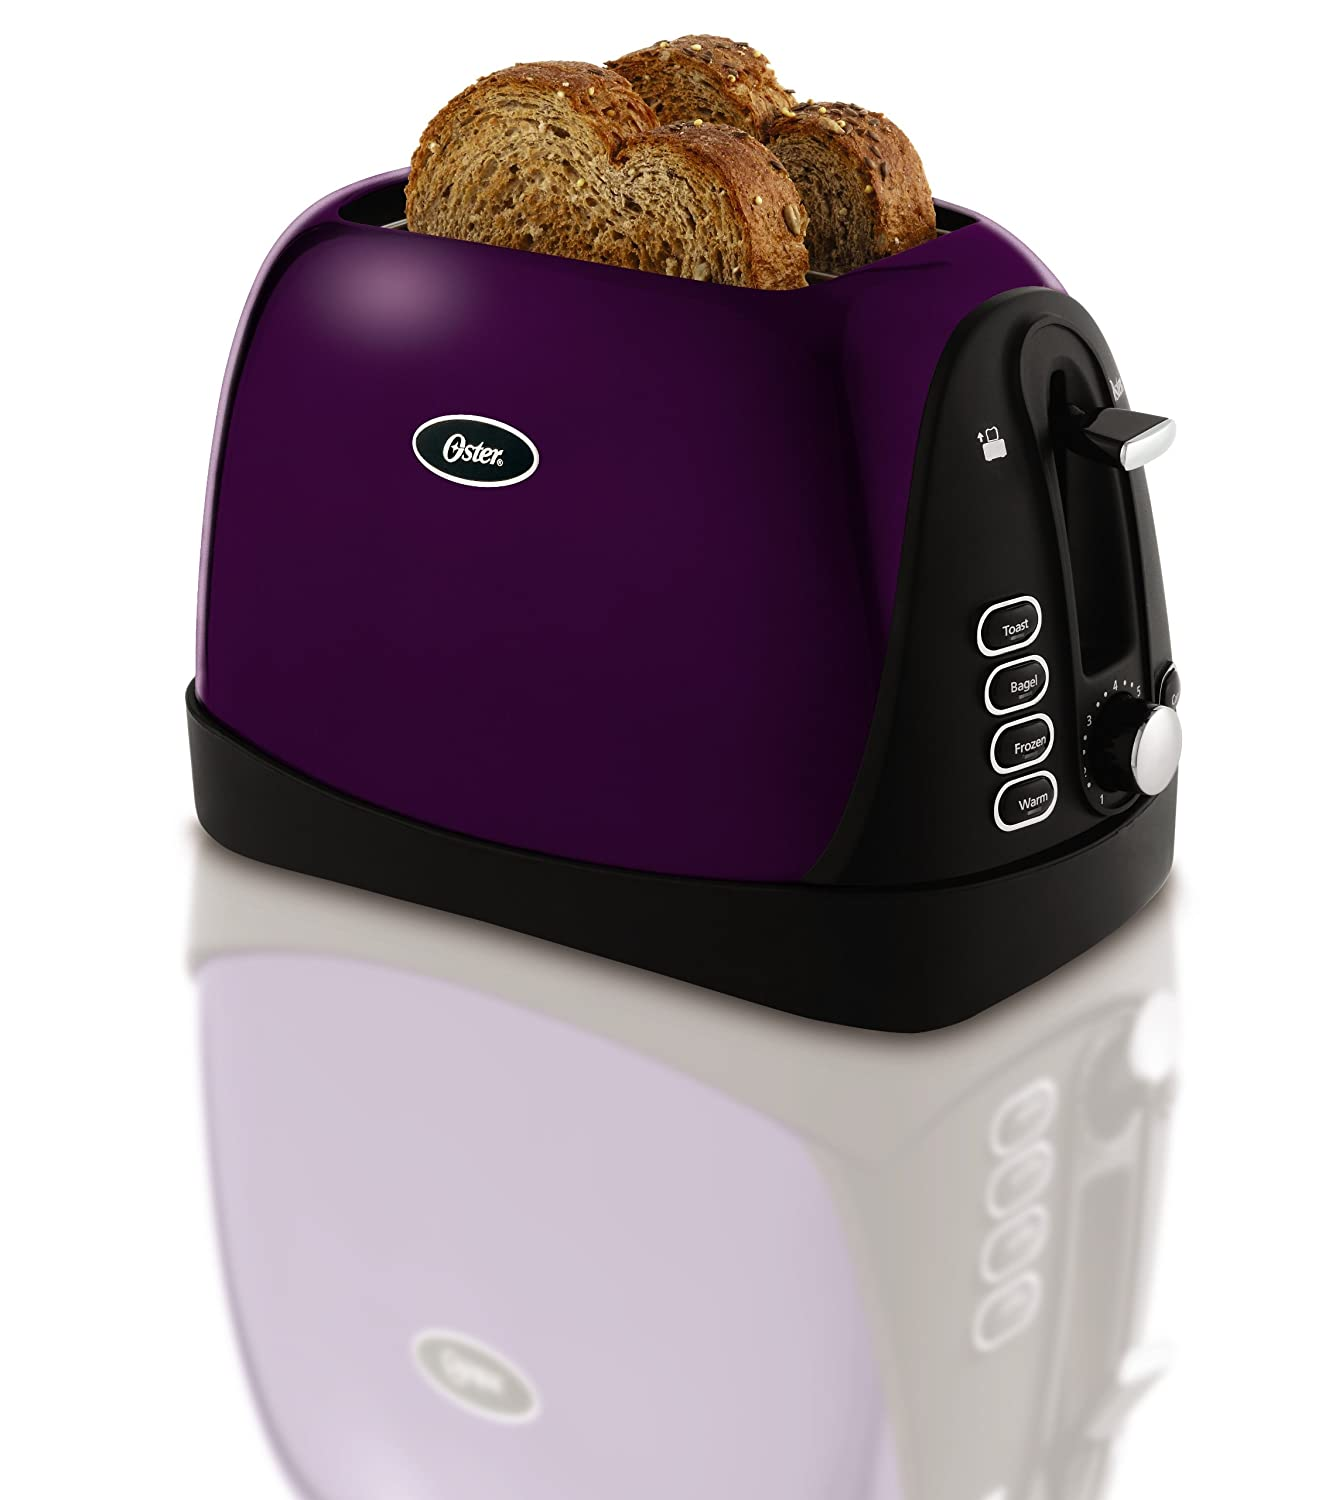 Amazon Toasters Ovens & Toasters Home & Kitchen